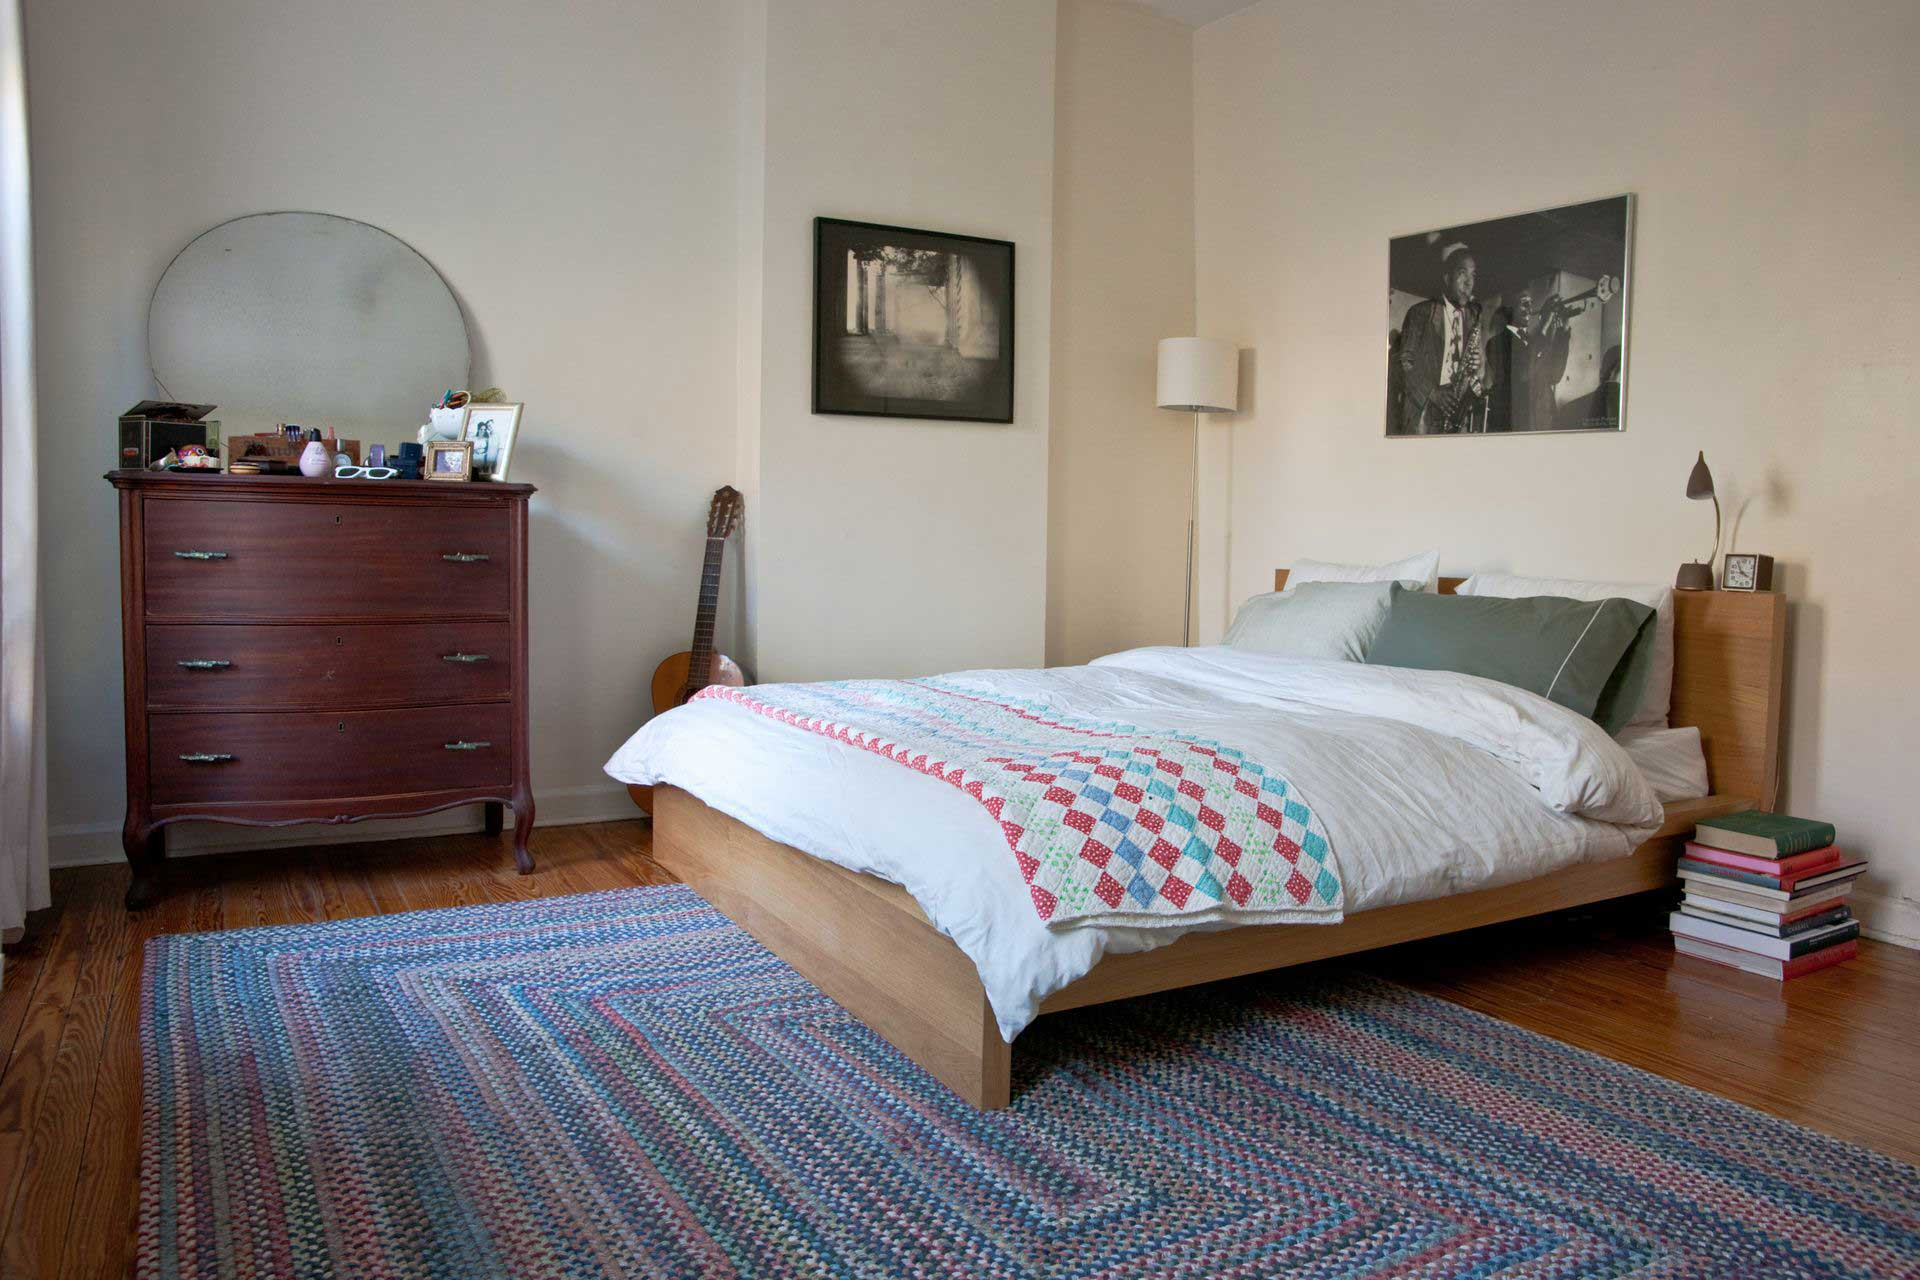 beautiful room decor with big rectangle multicolor braided rugs plus white bedding on wooden floor ideas